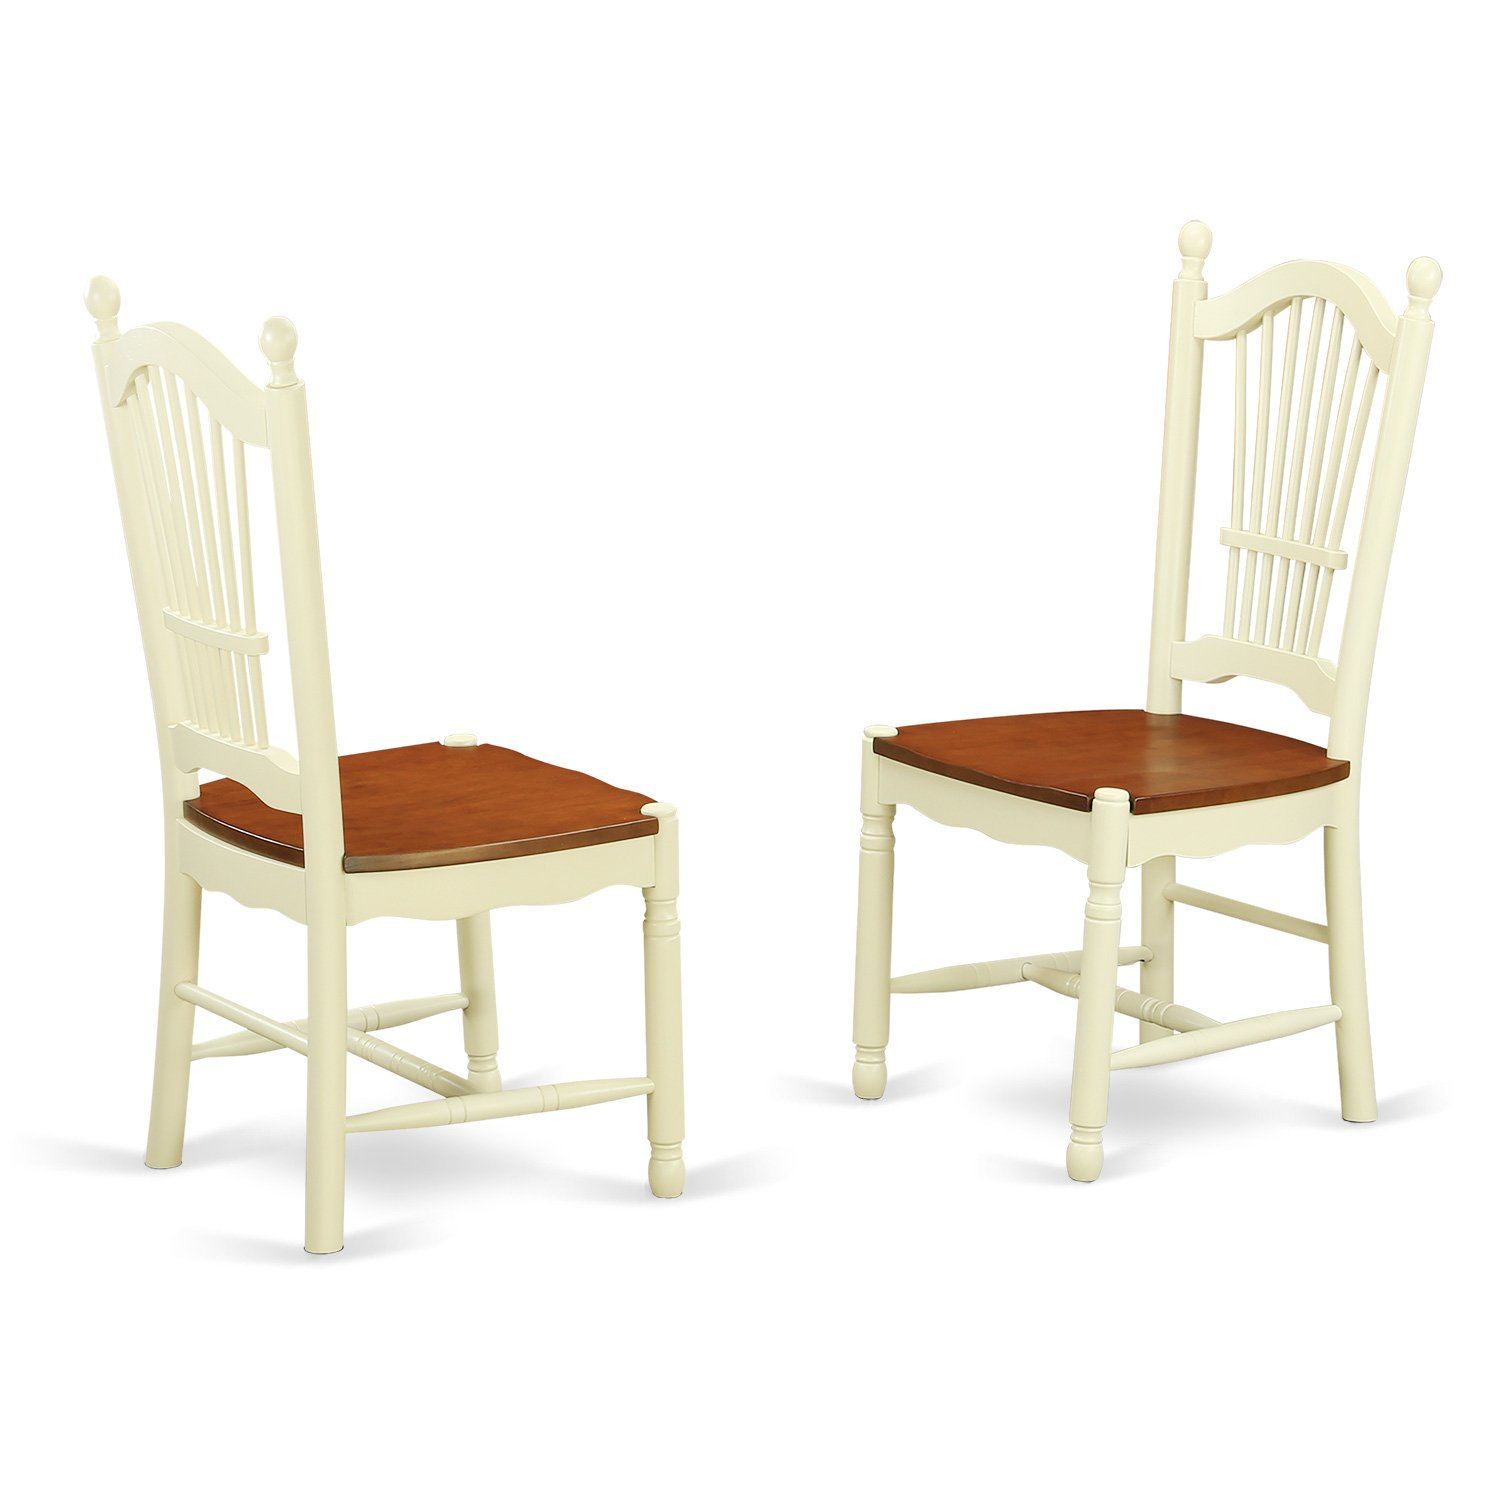 Amazoncom Doc Whi W Dover Dining Room Chairs With Wood Seat In